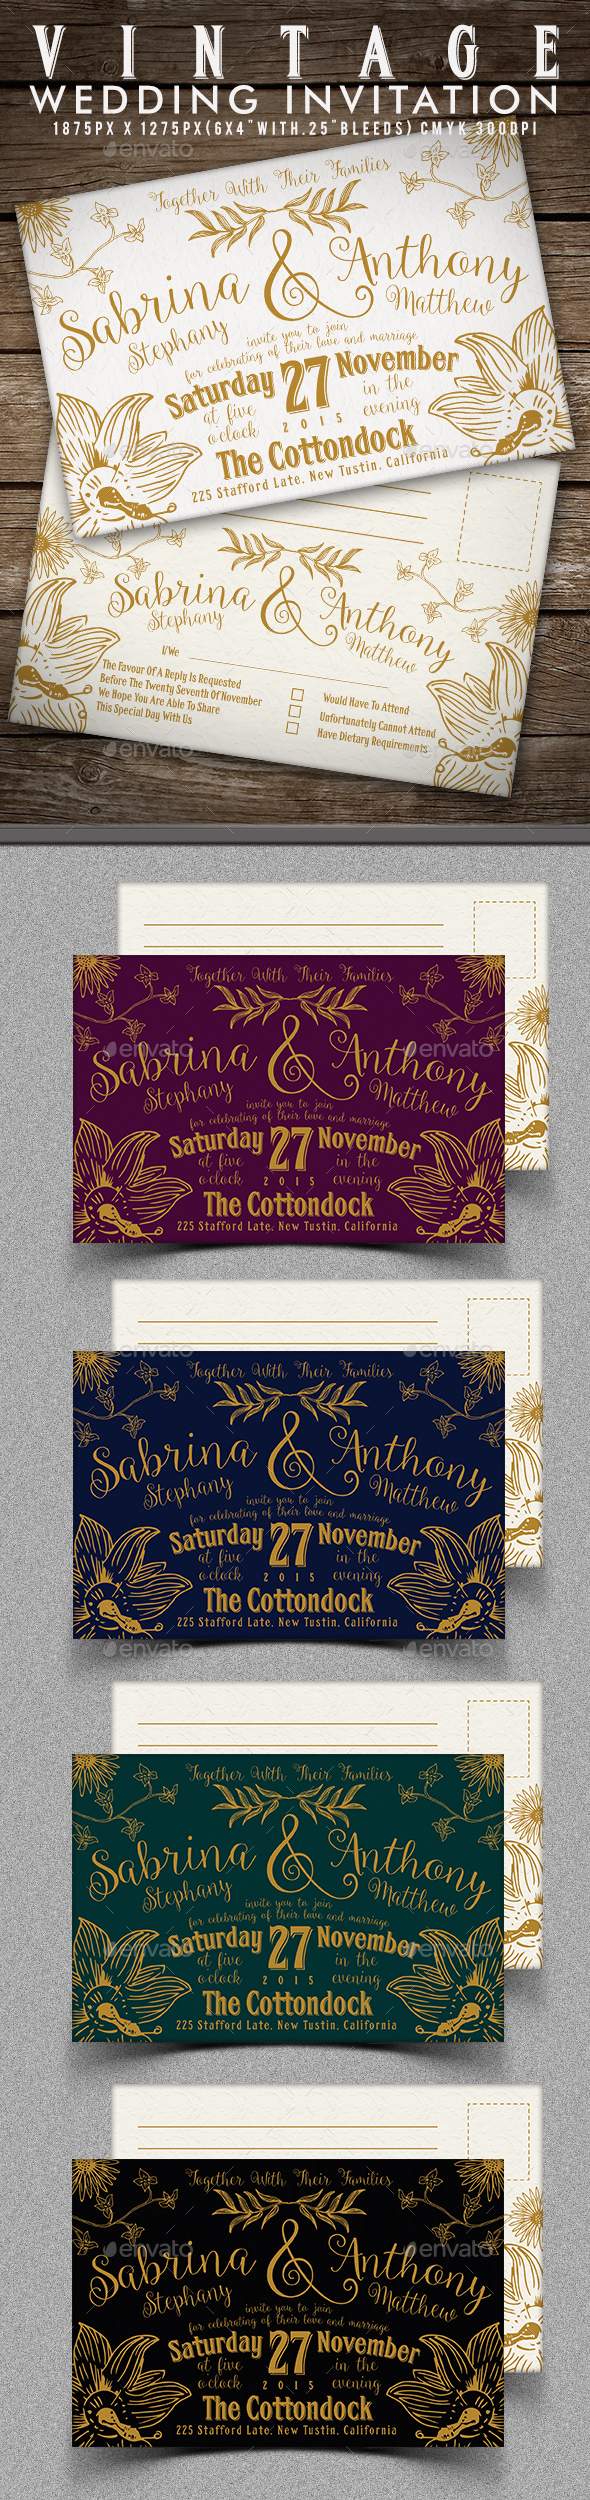 Vintage Wedding Invitation - Invitations Cards & Invites